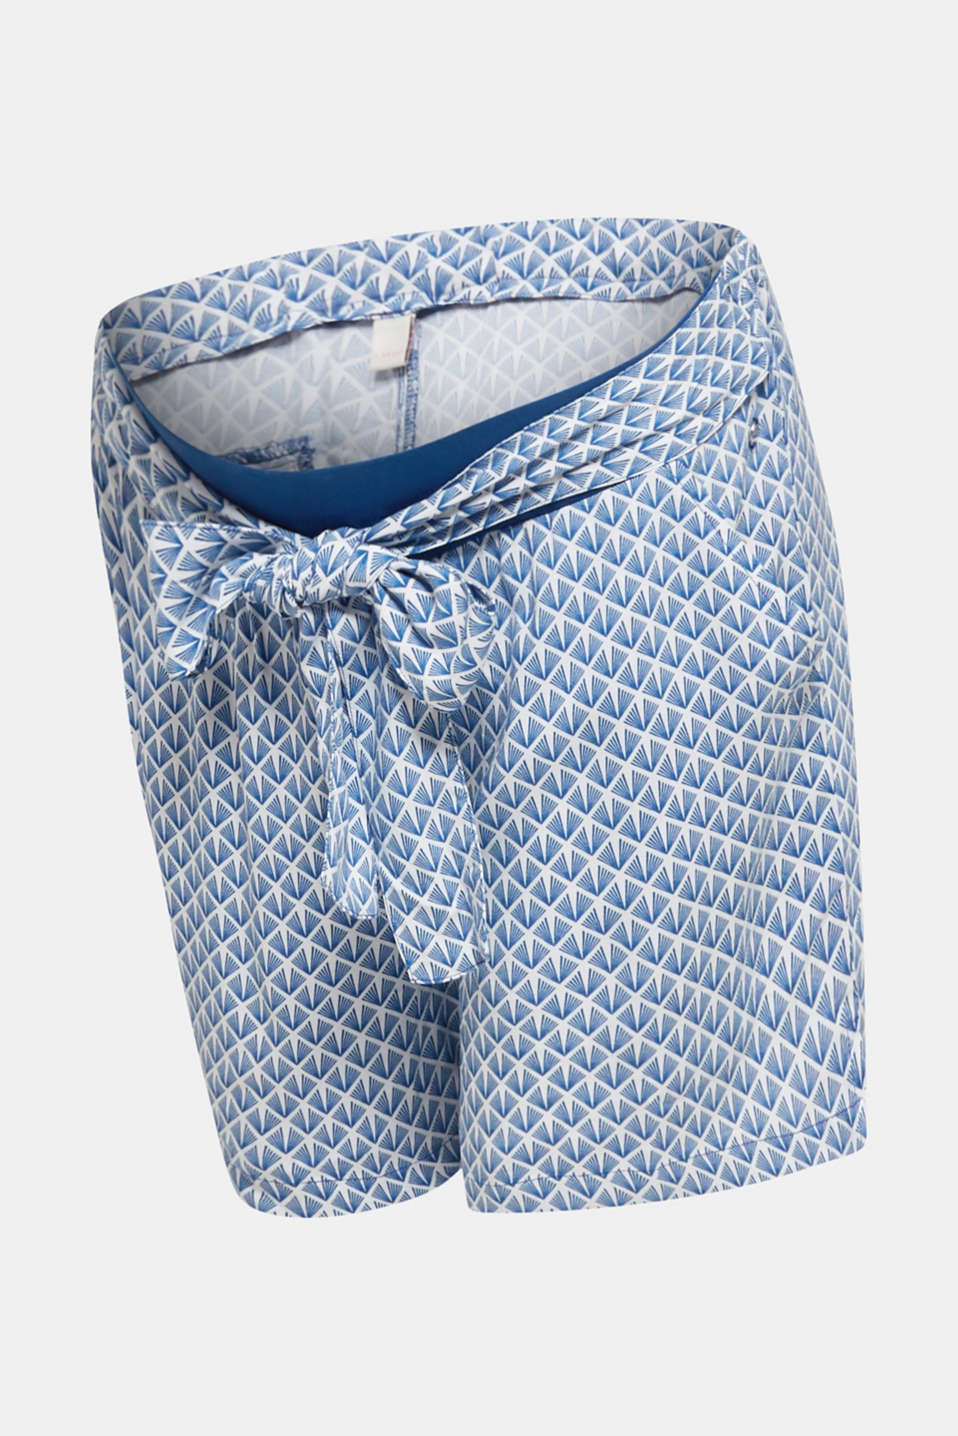 Woven shorts with an under-bump waistband, LCGREY BLUE, detail image number 7